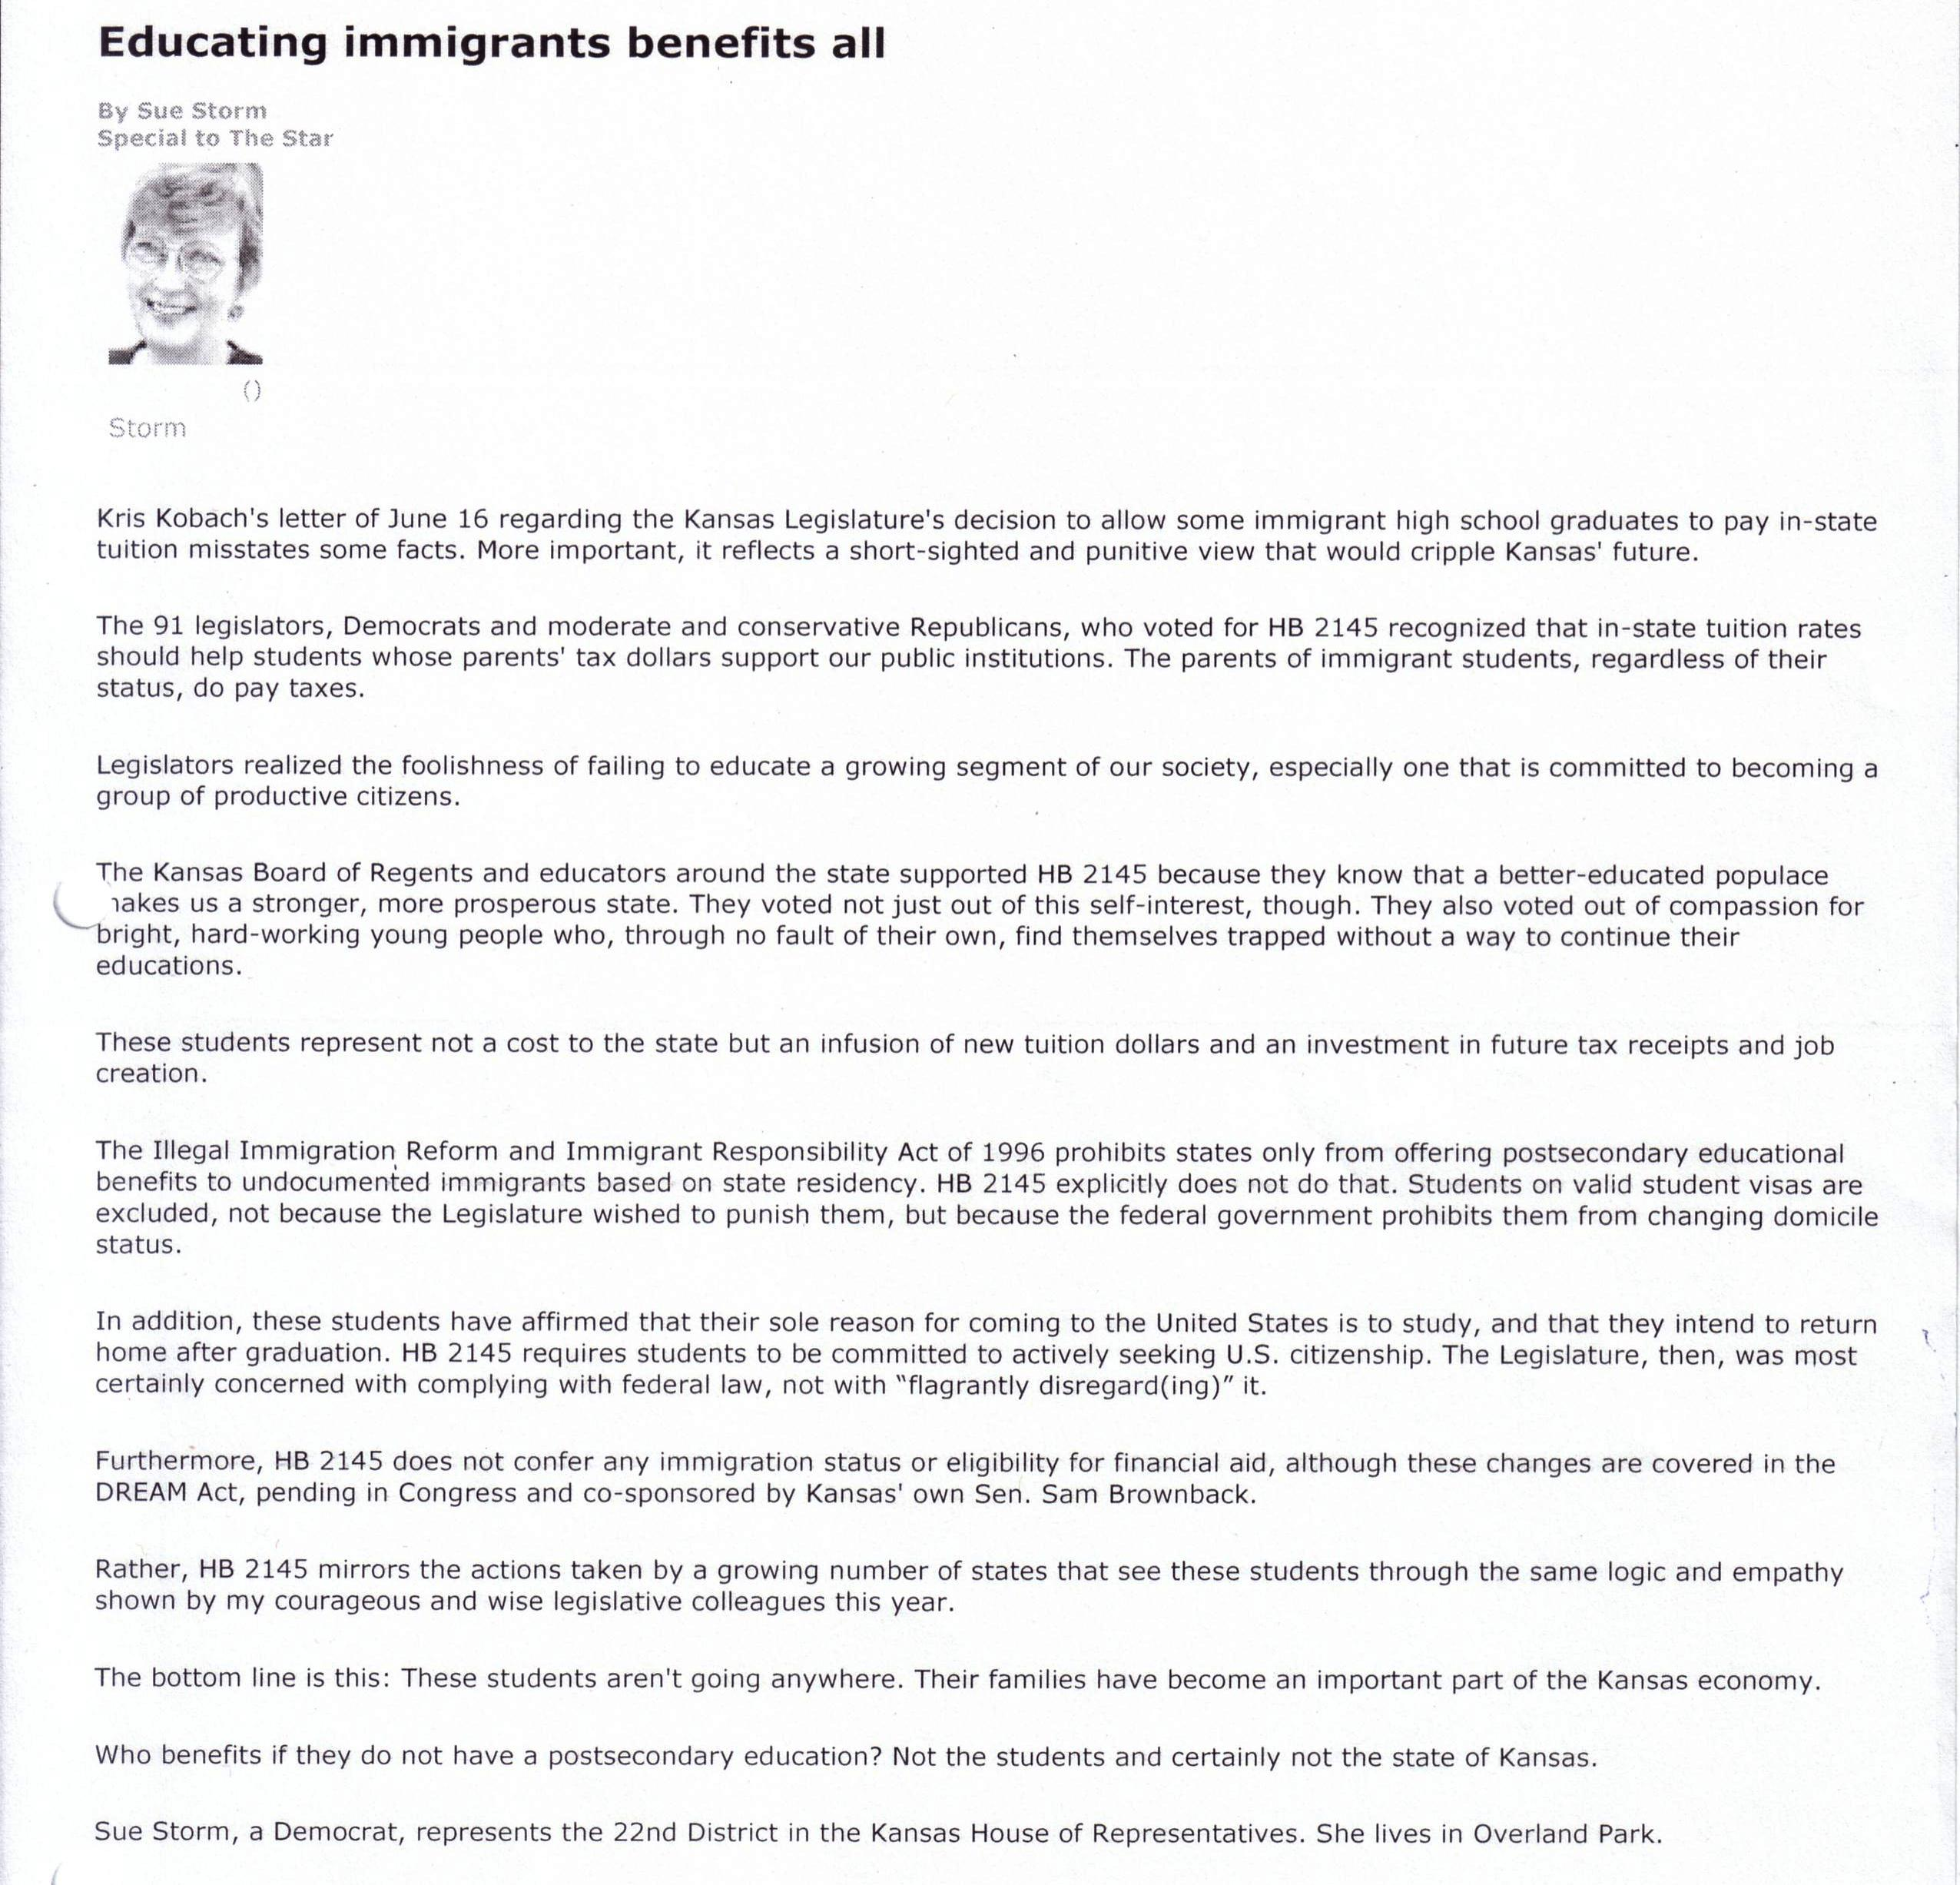 educating immigrants benefits all